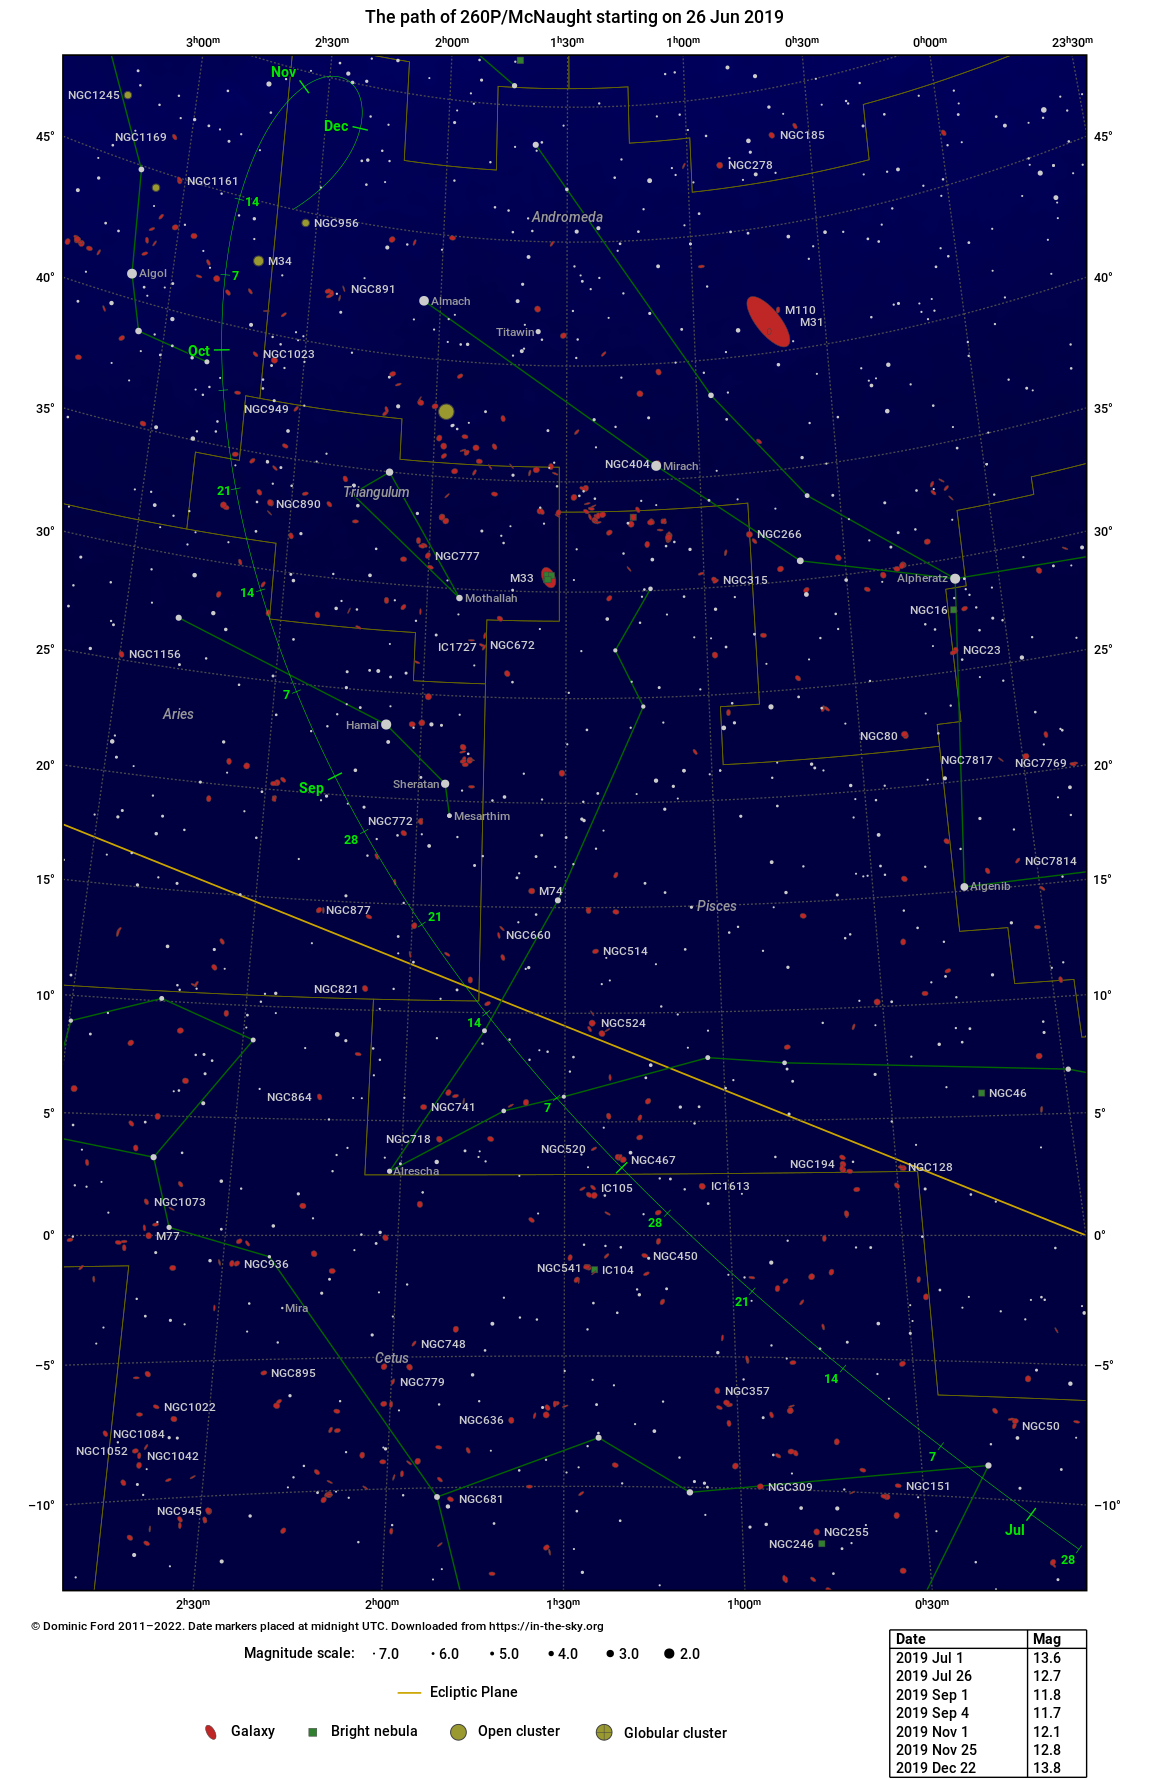 The path traced across the sky by 260P/McNaught